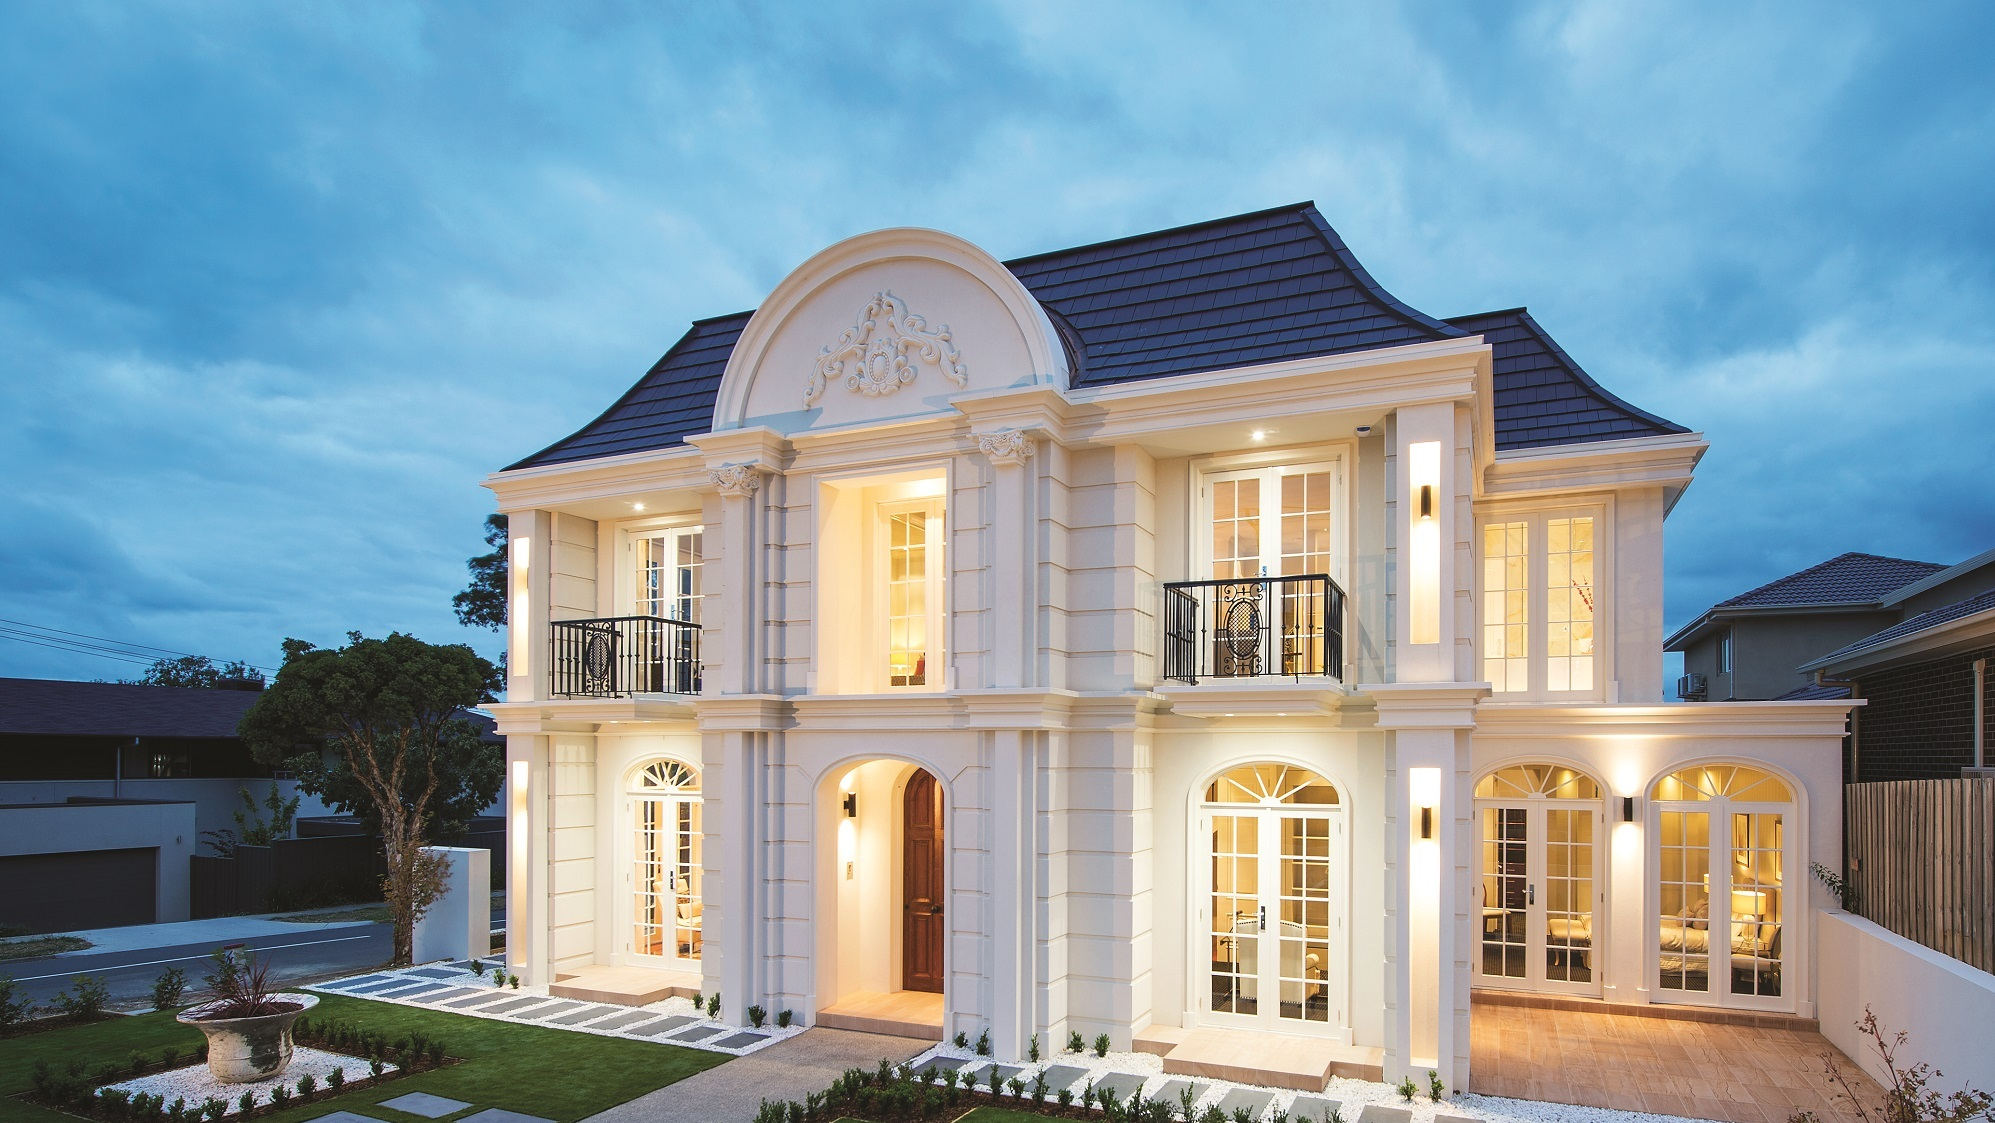 European style custom homes melbourne melbourne custom homes for Custom home online